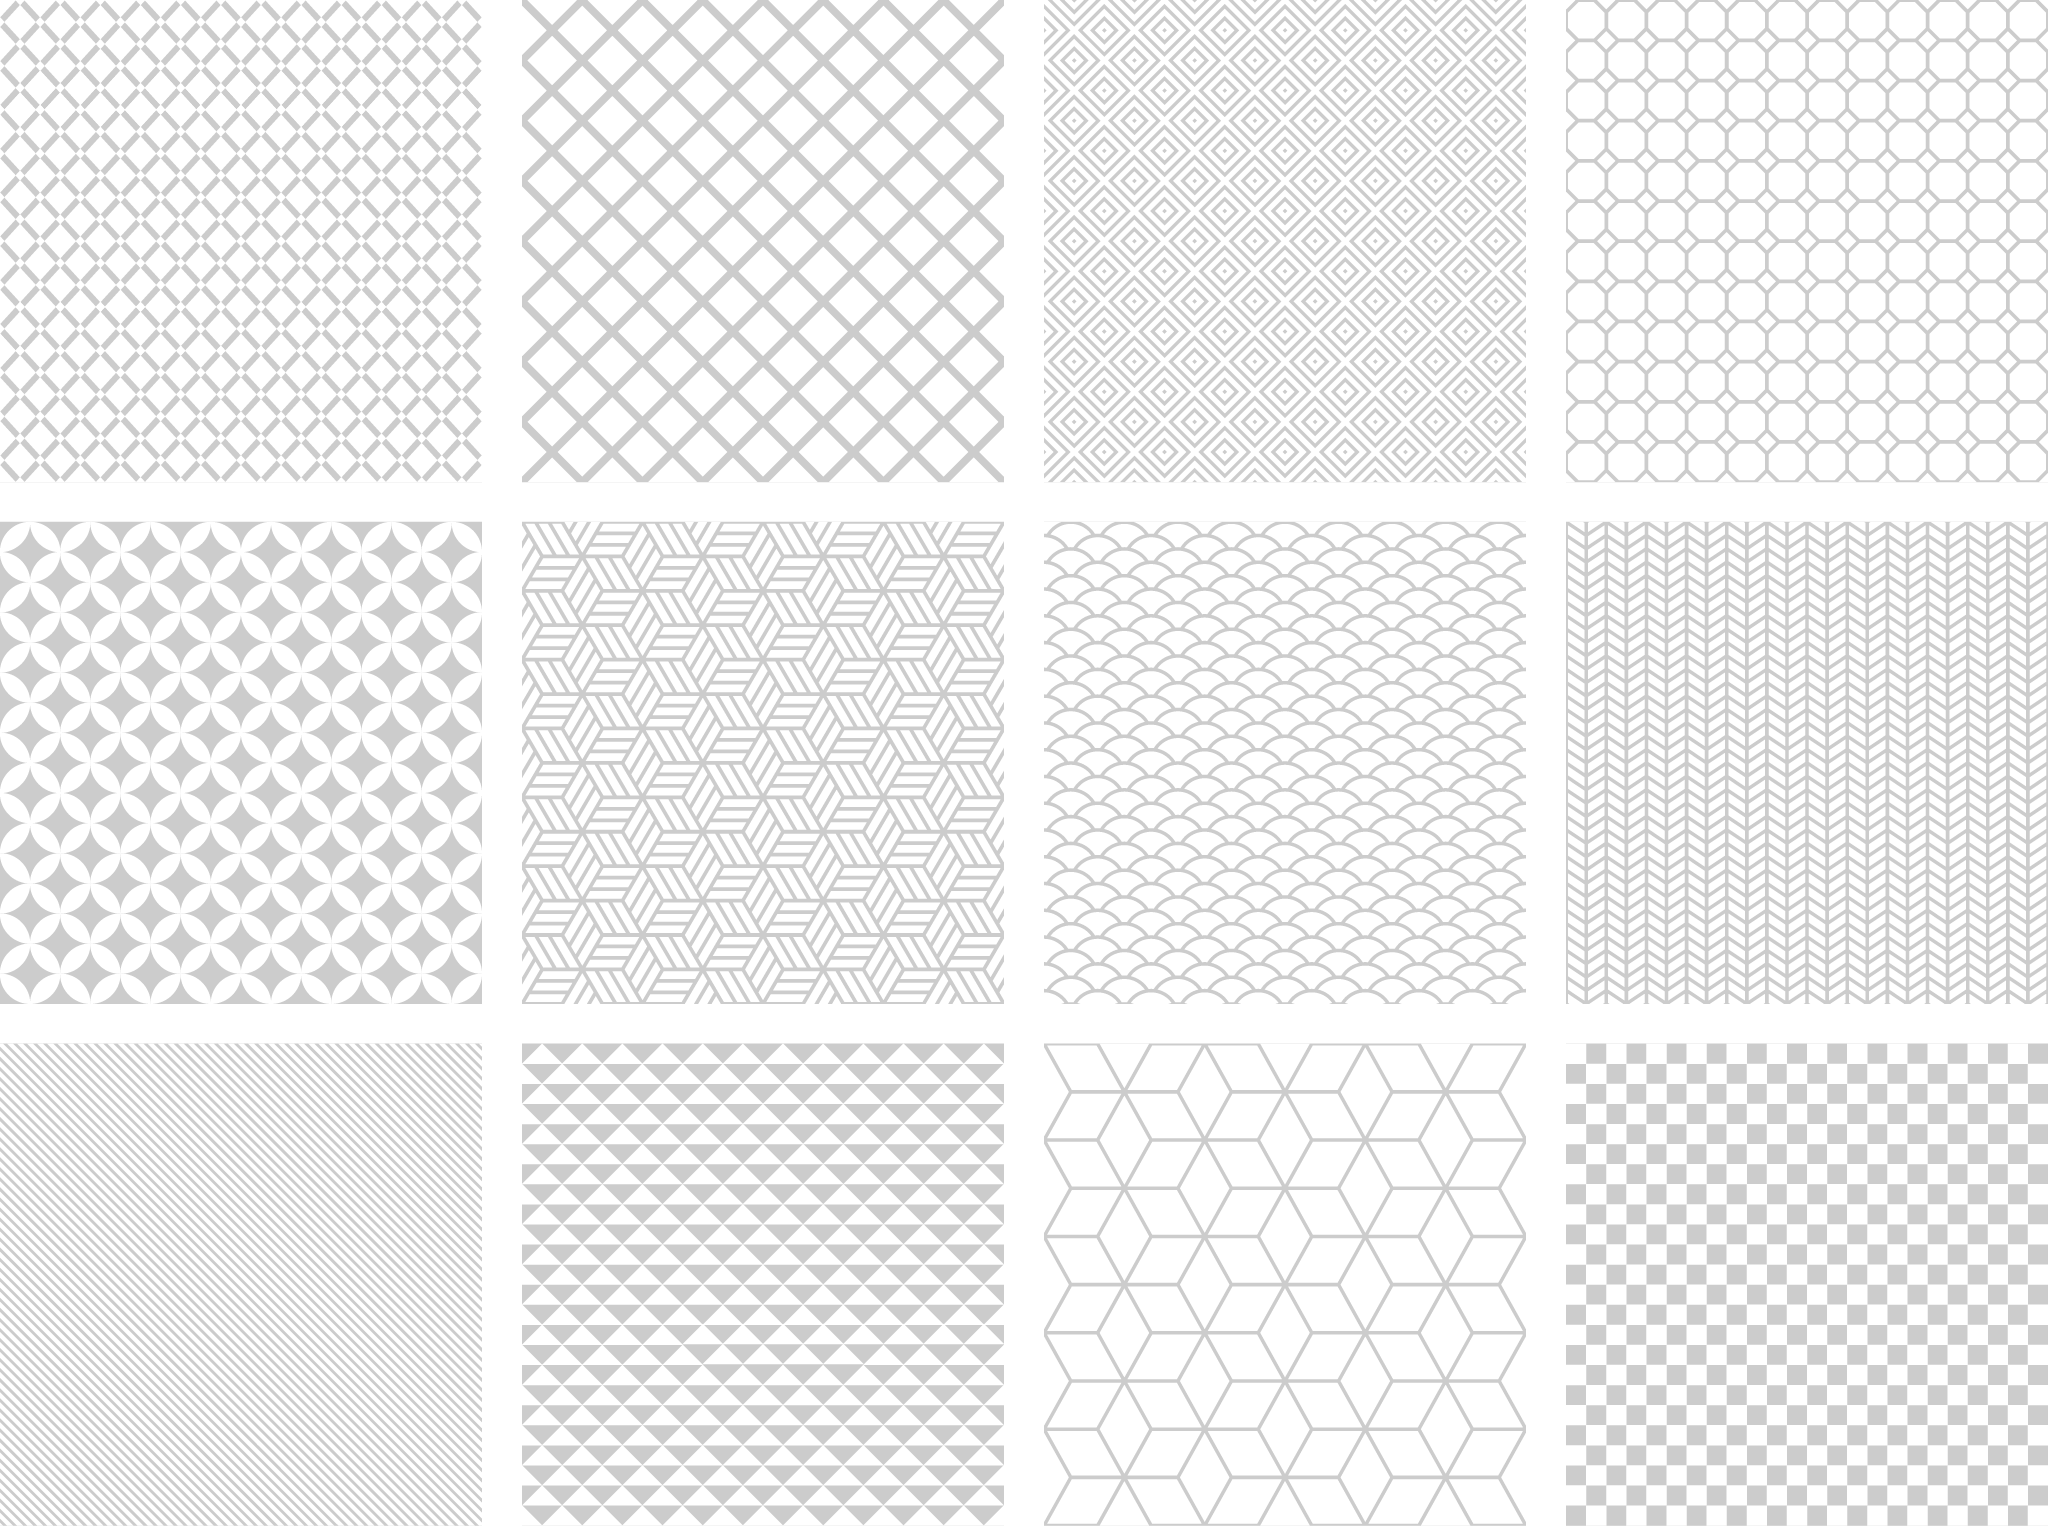 Design Feature - Free Seamless Patterns